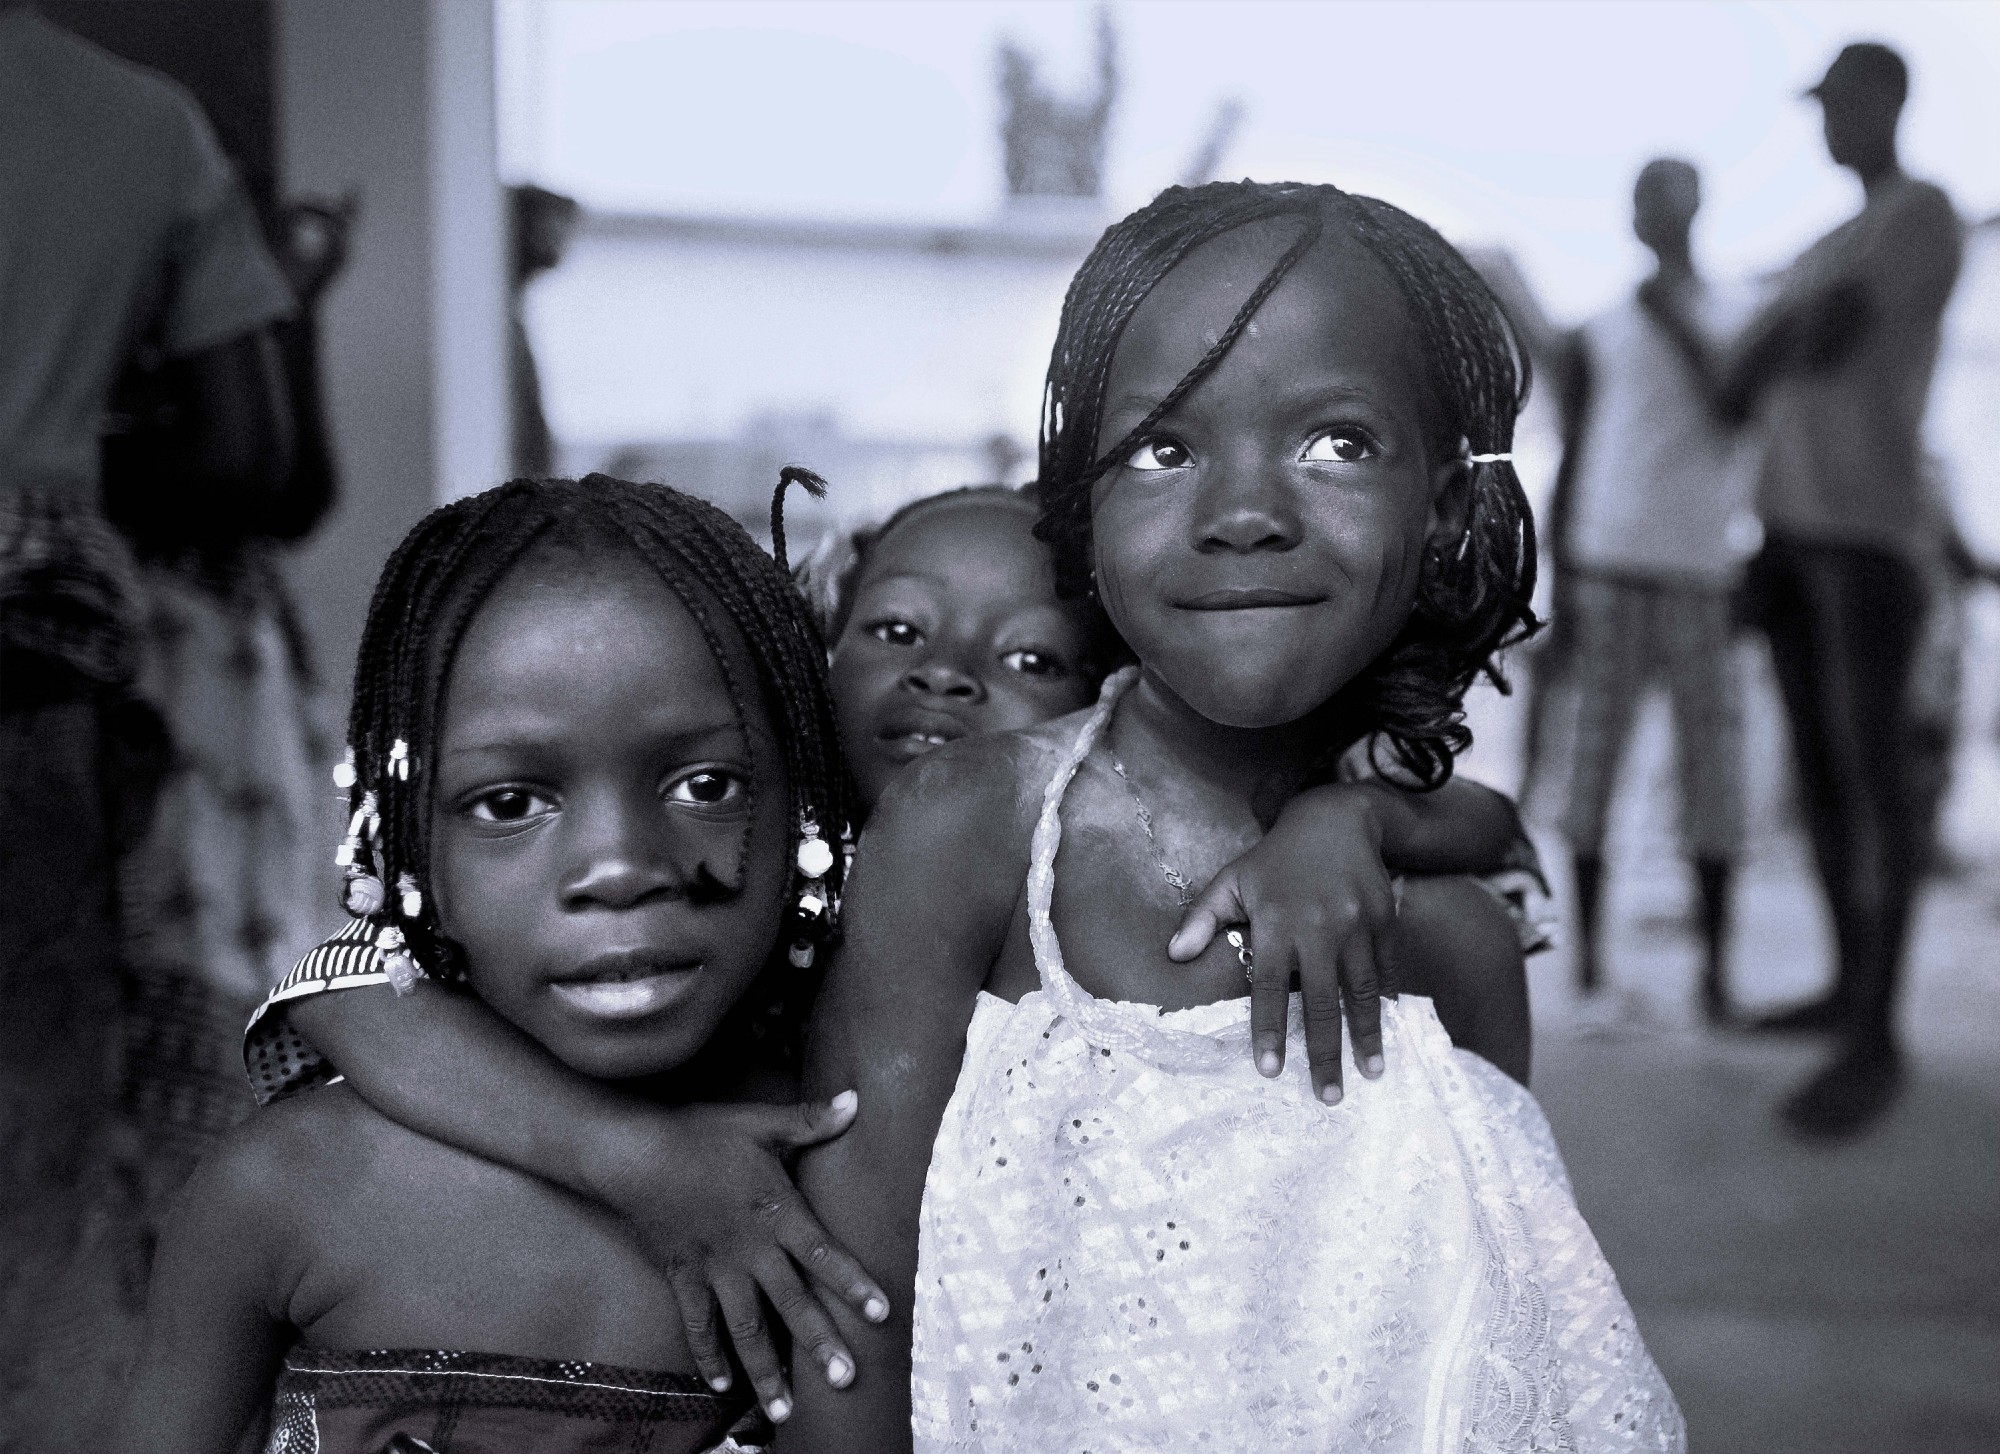 Three Small Girls in Benin